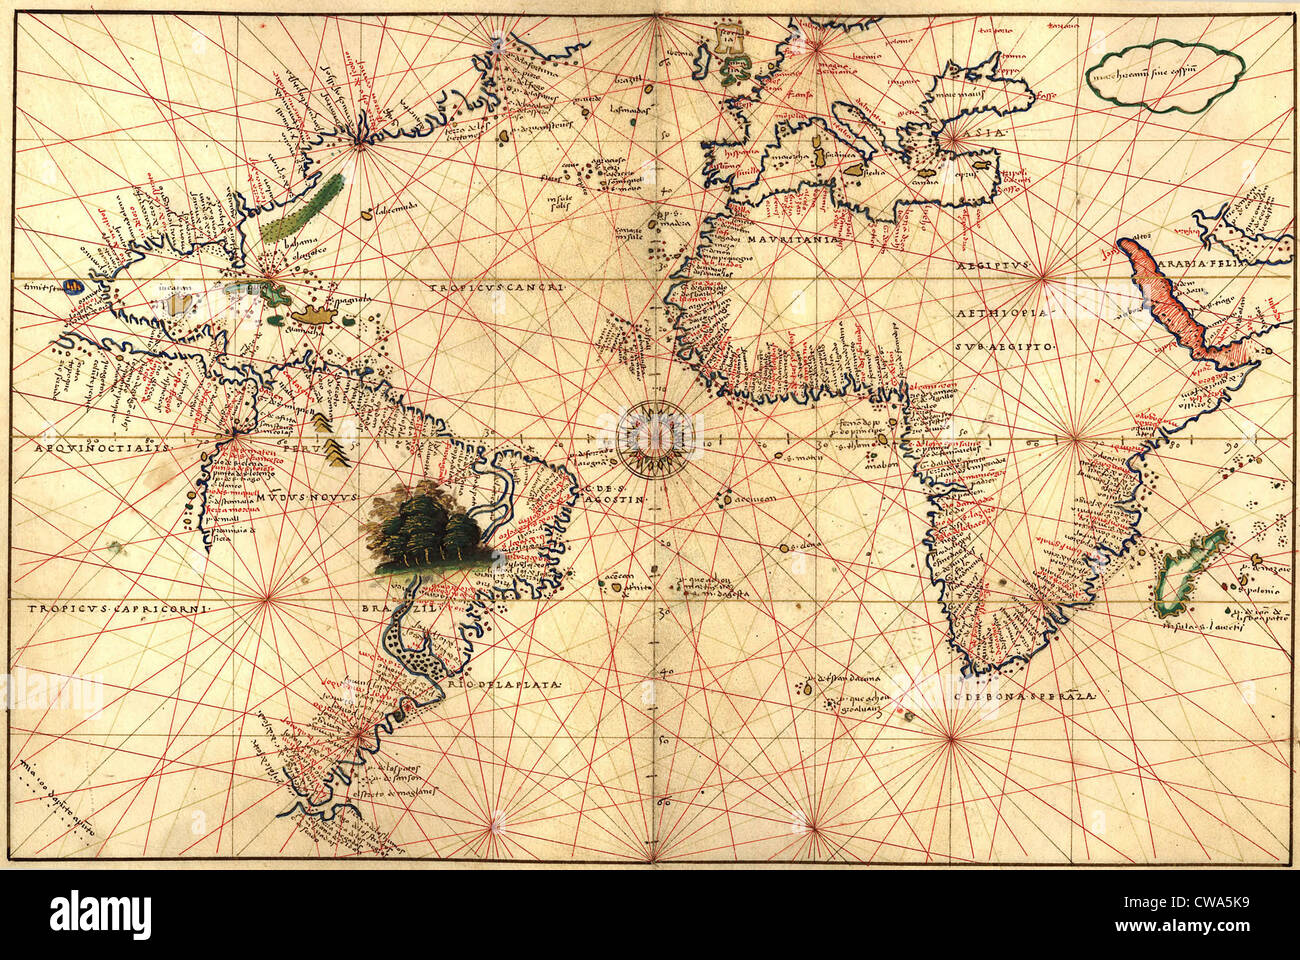 1544 nautical map of the Atlantic Ocean, showing eastern North